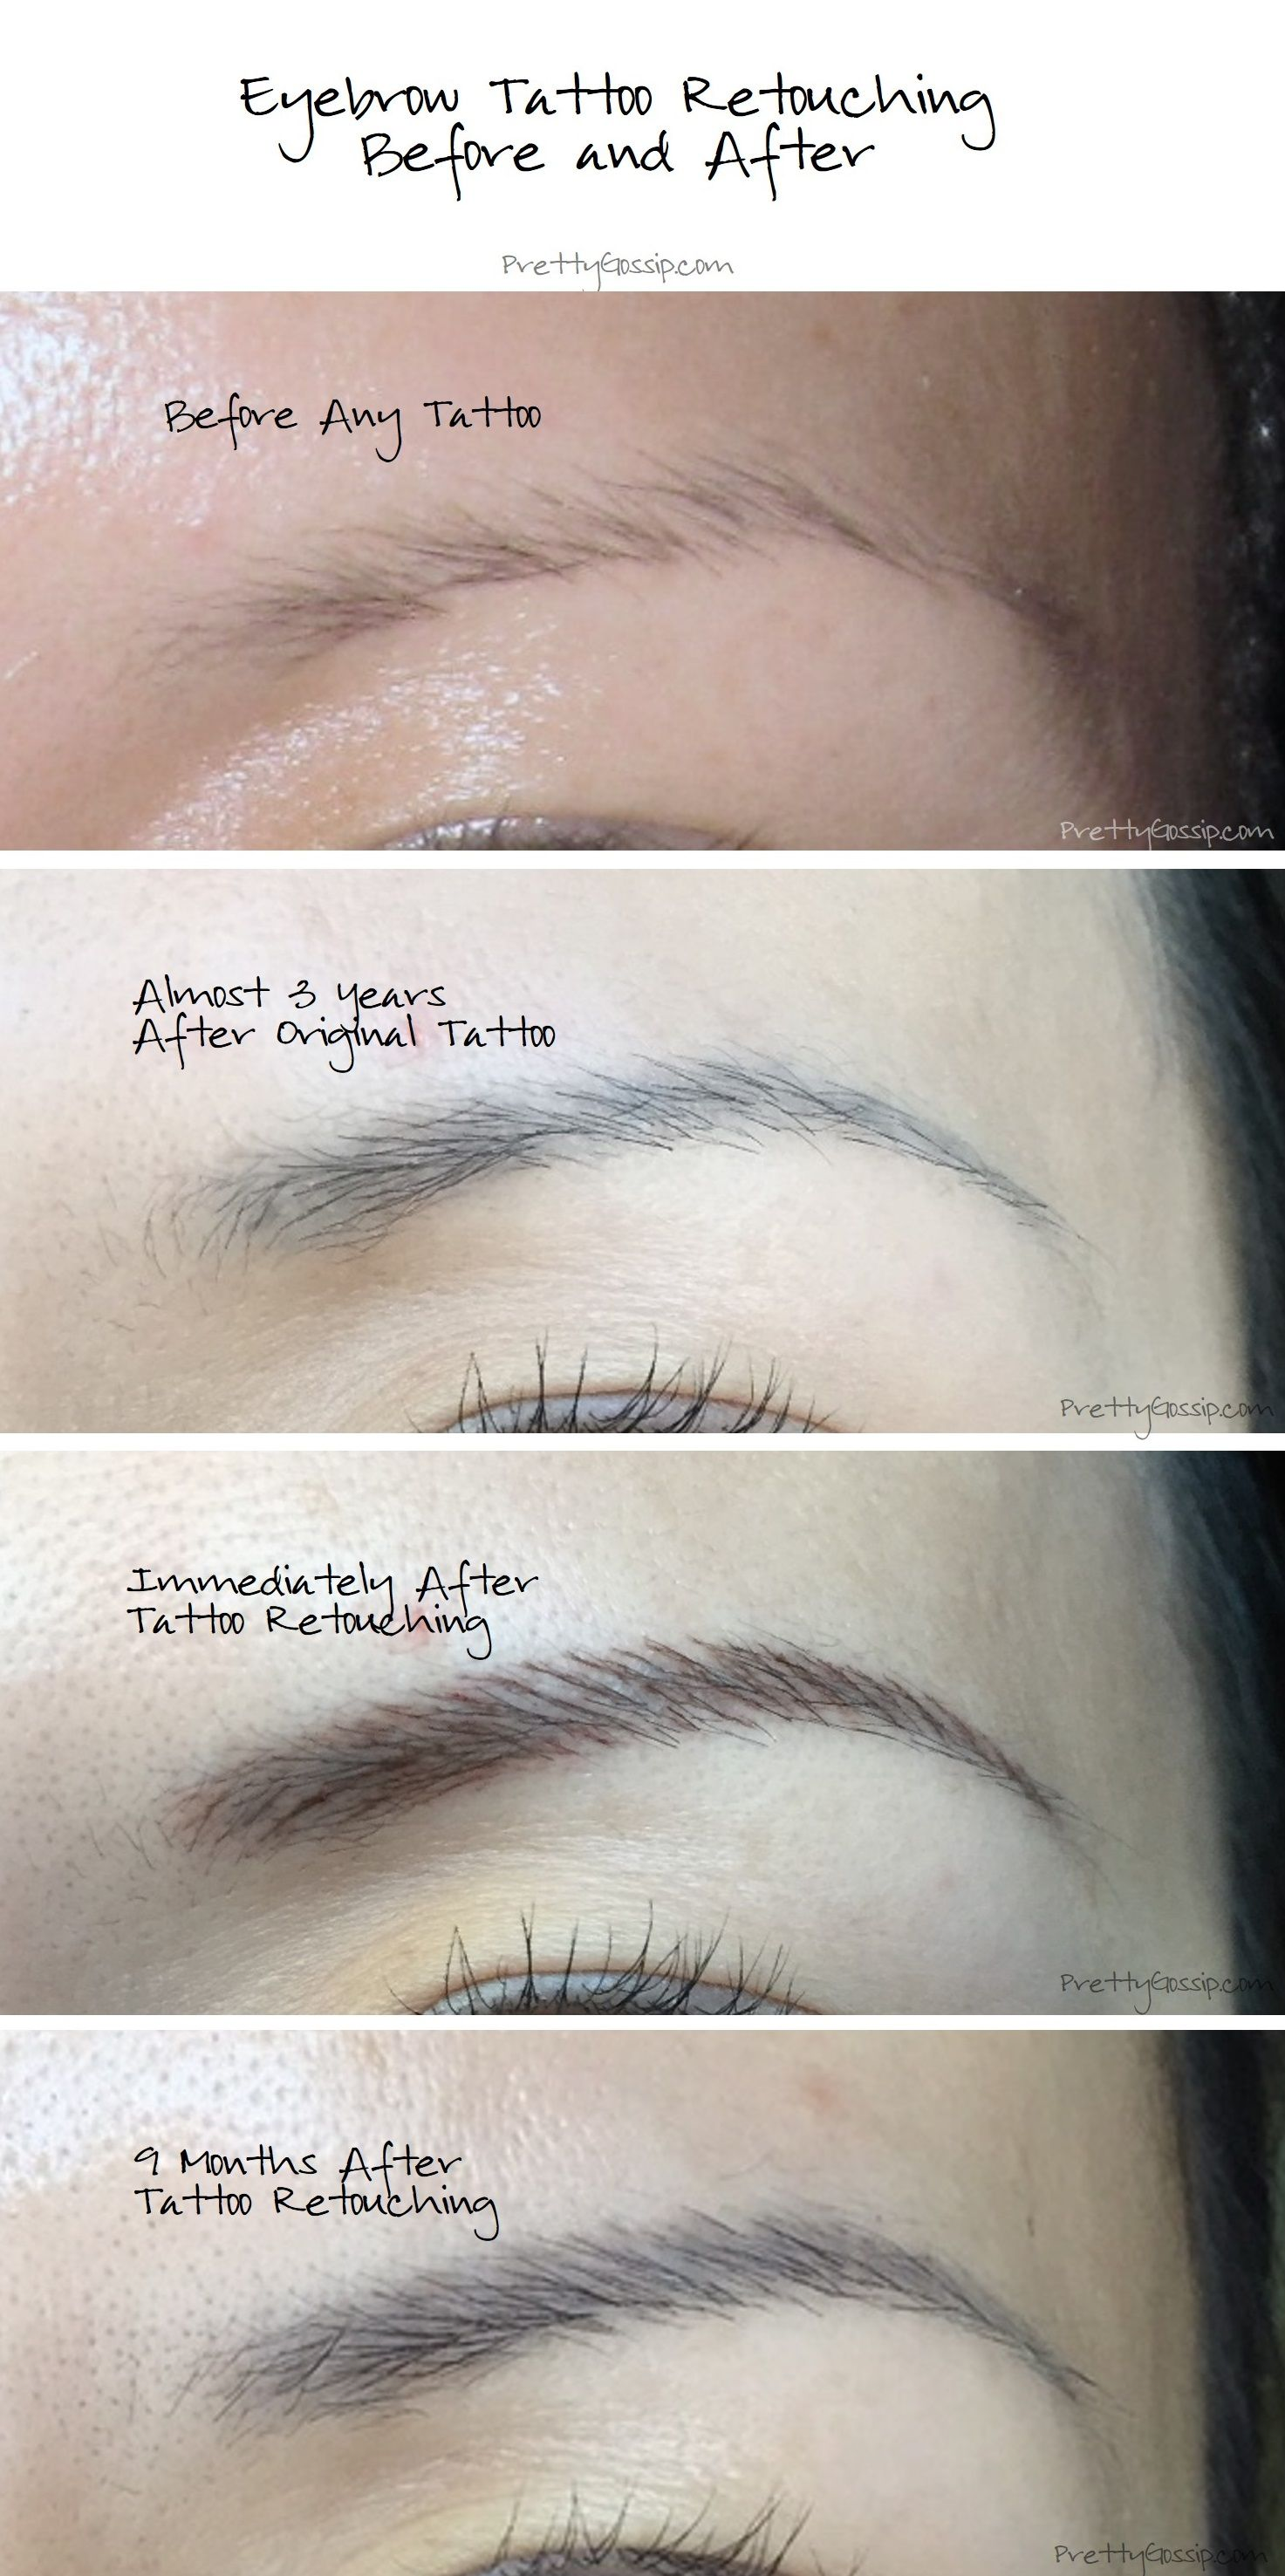 My eyebrow tattoo journey. A must read before getting any makeup ...